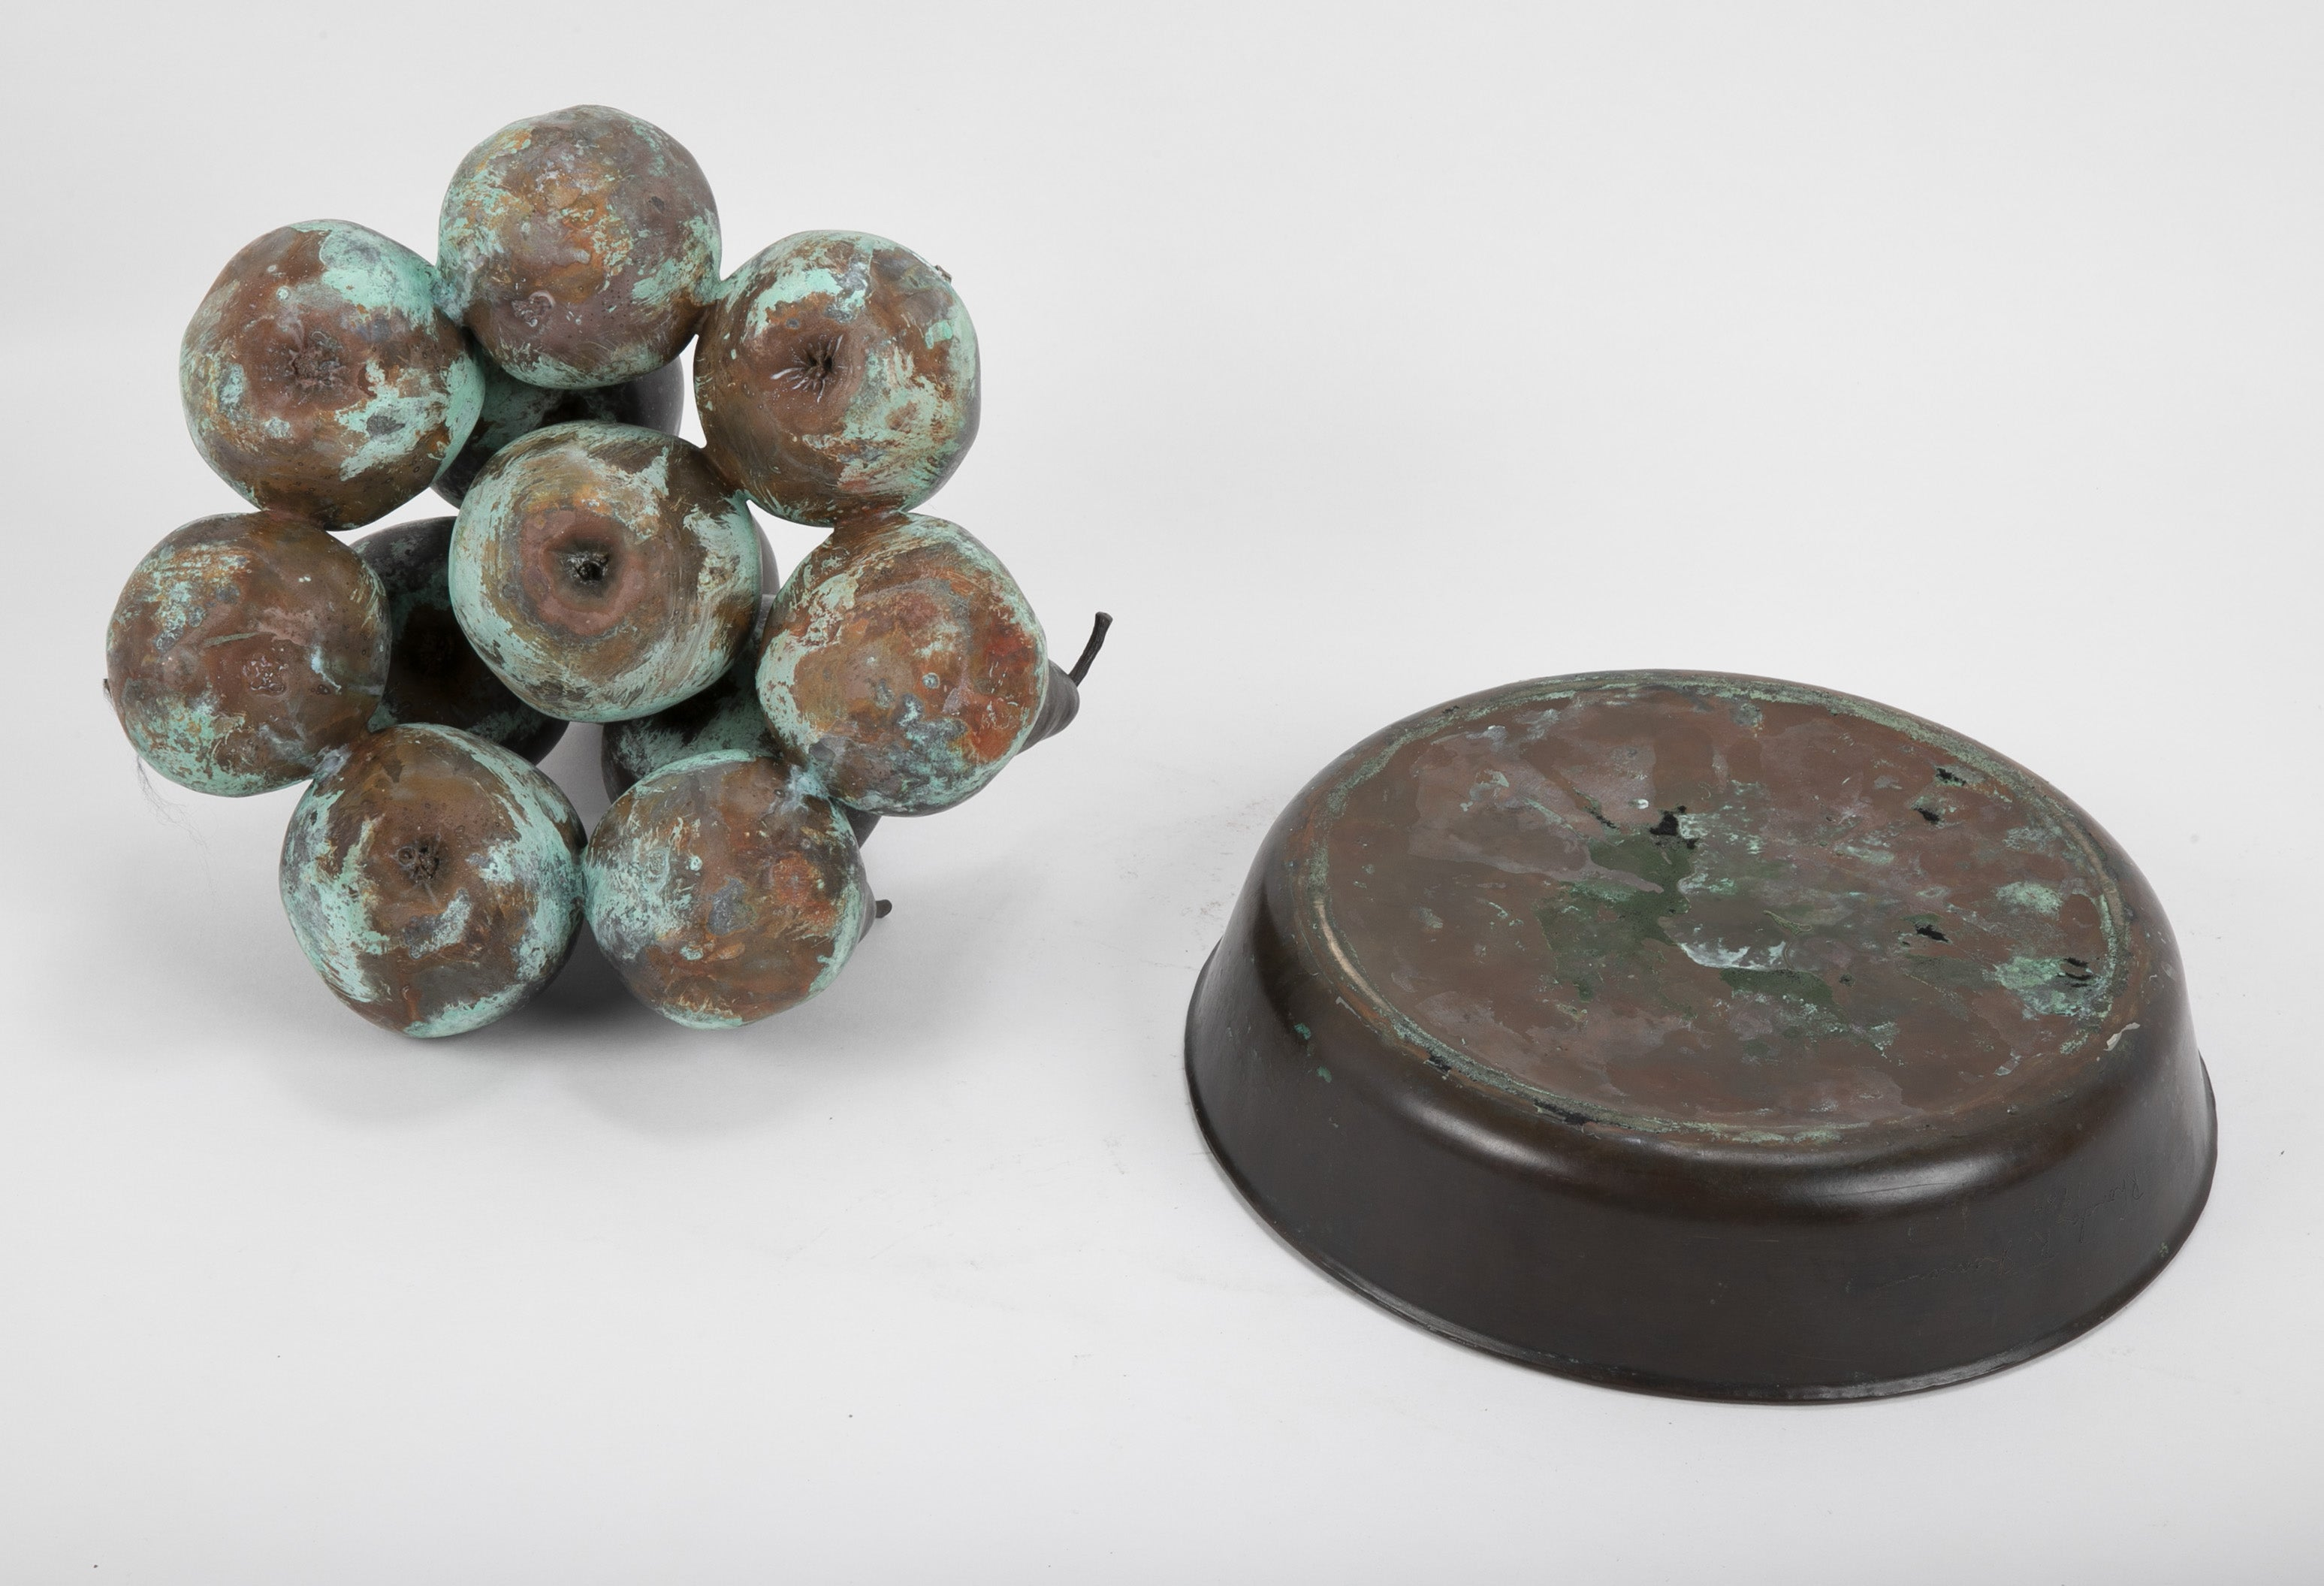 Bronze Sculpture of Fruit by Rhonda R. Shearer